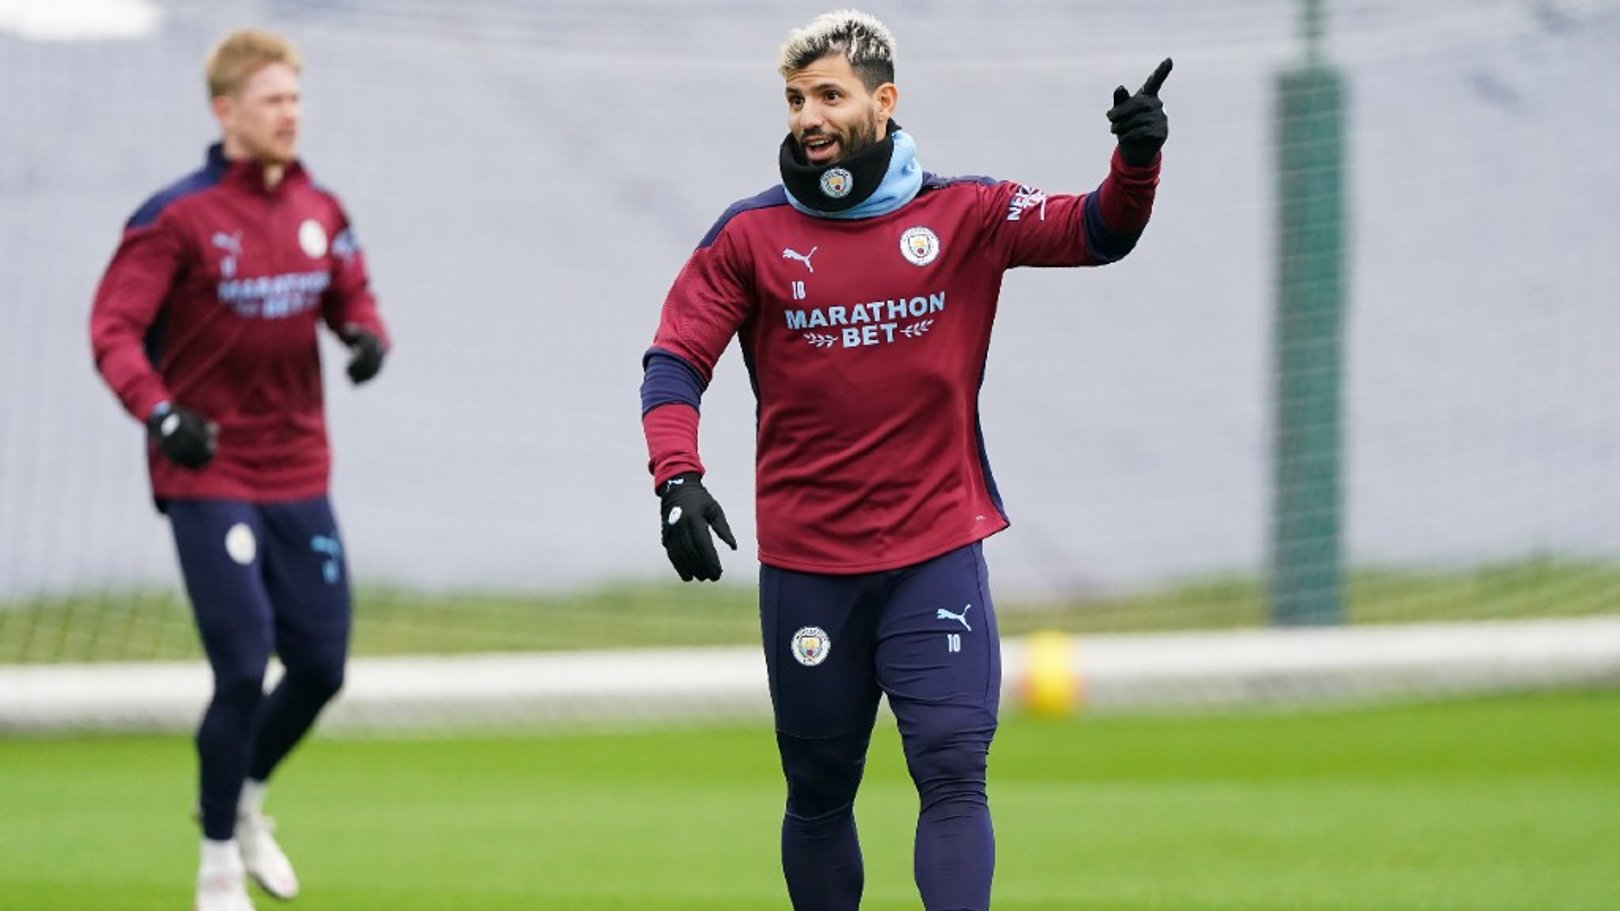 Southampton v City: Jesus and Laporte out with Aguero on the bench